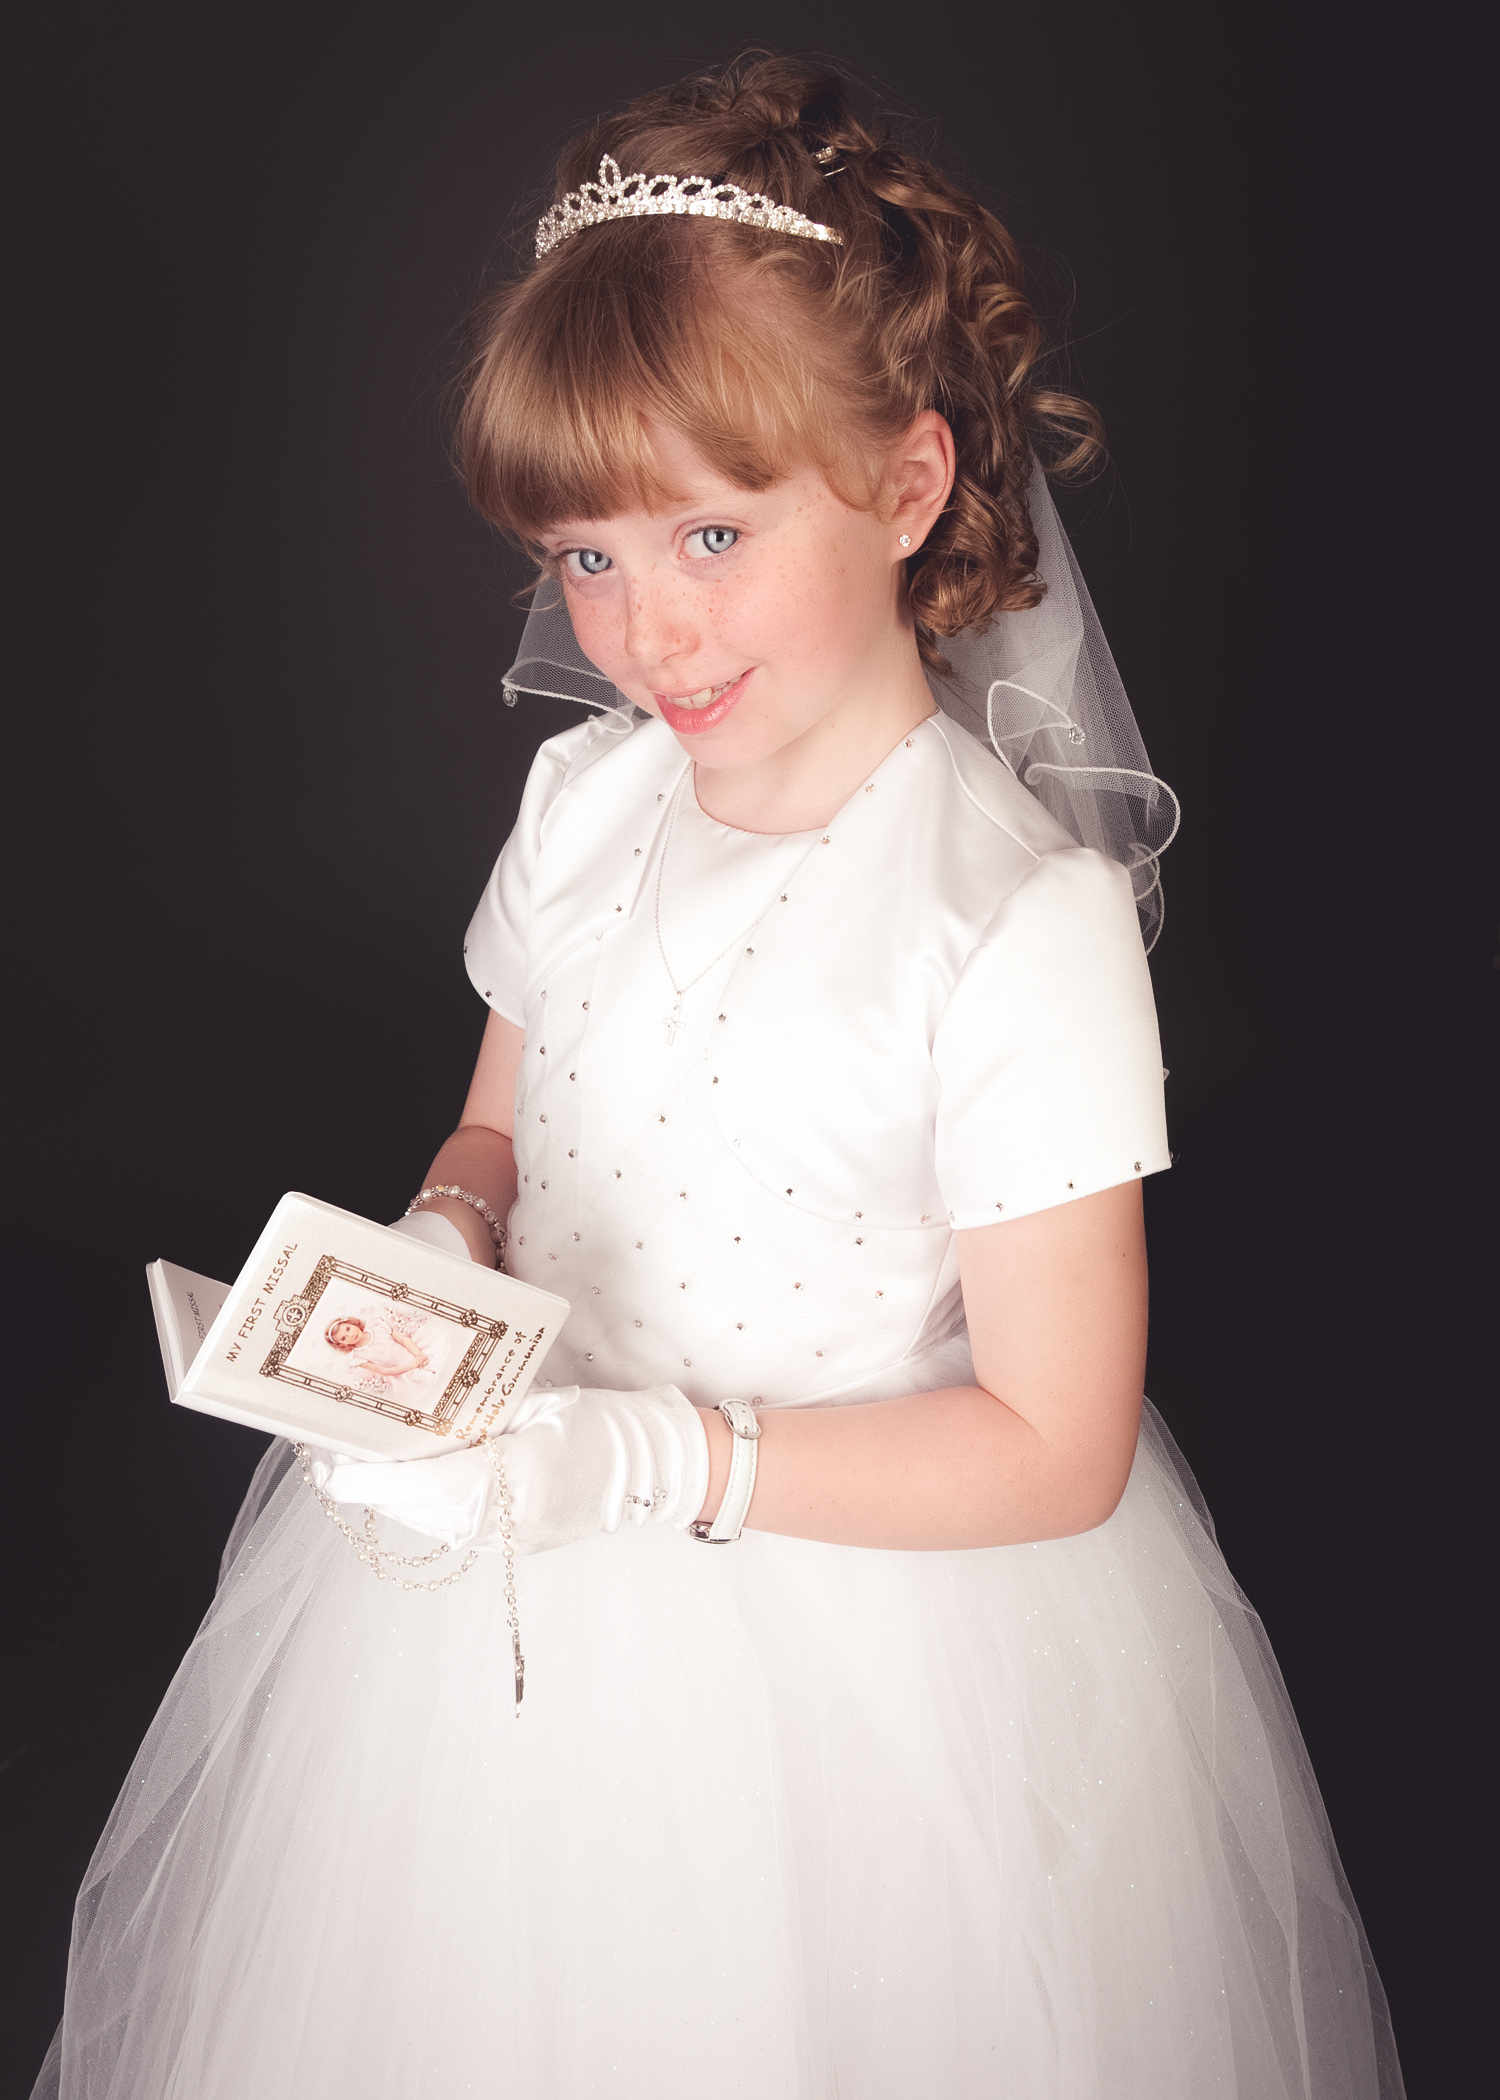 derry-londonderry-donegal-first-holy-communion-confirmation.jpg